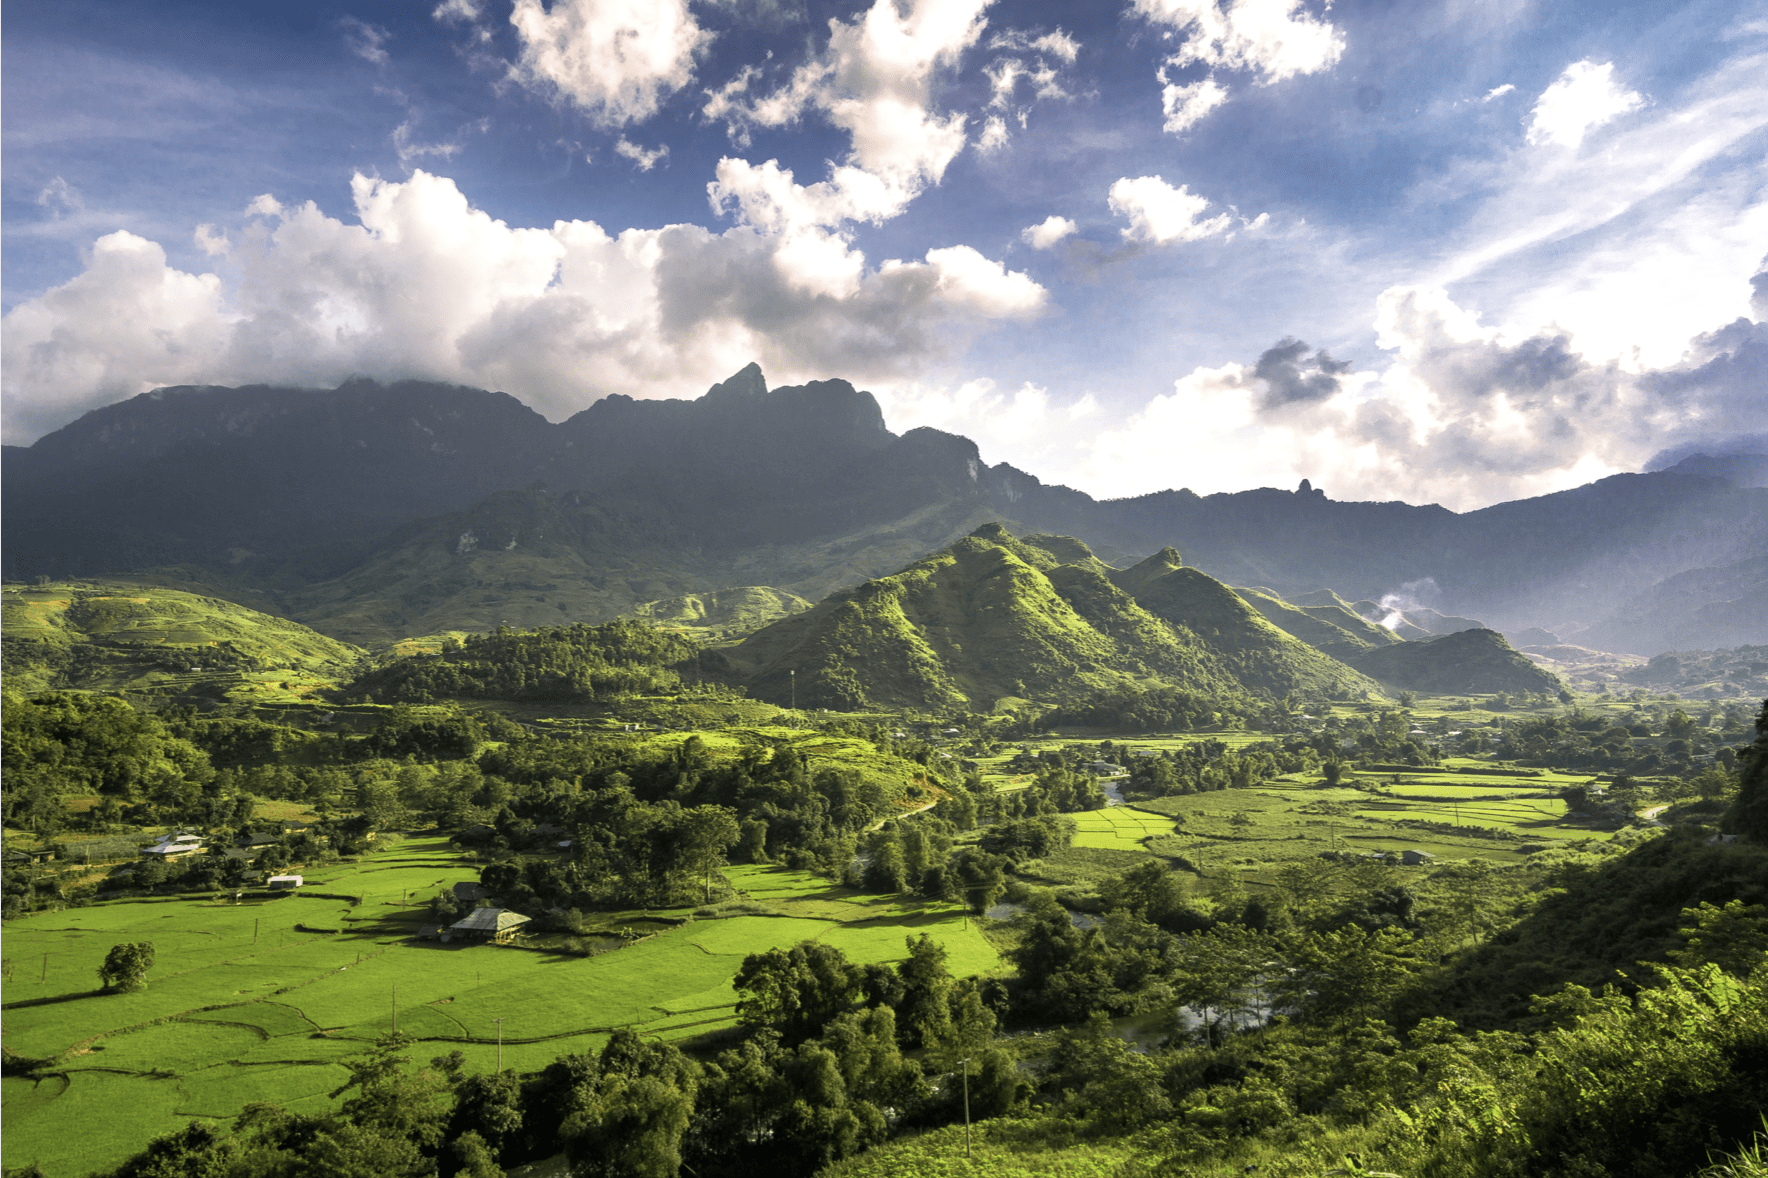 Greenery in Vietnam with many trees alongside a mountain with clouds and blue sky